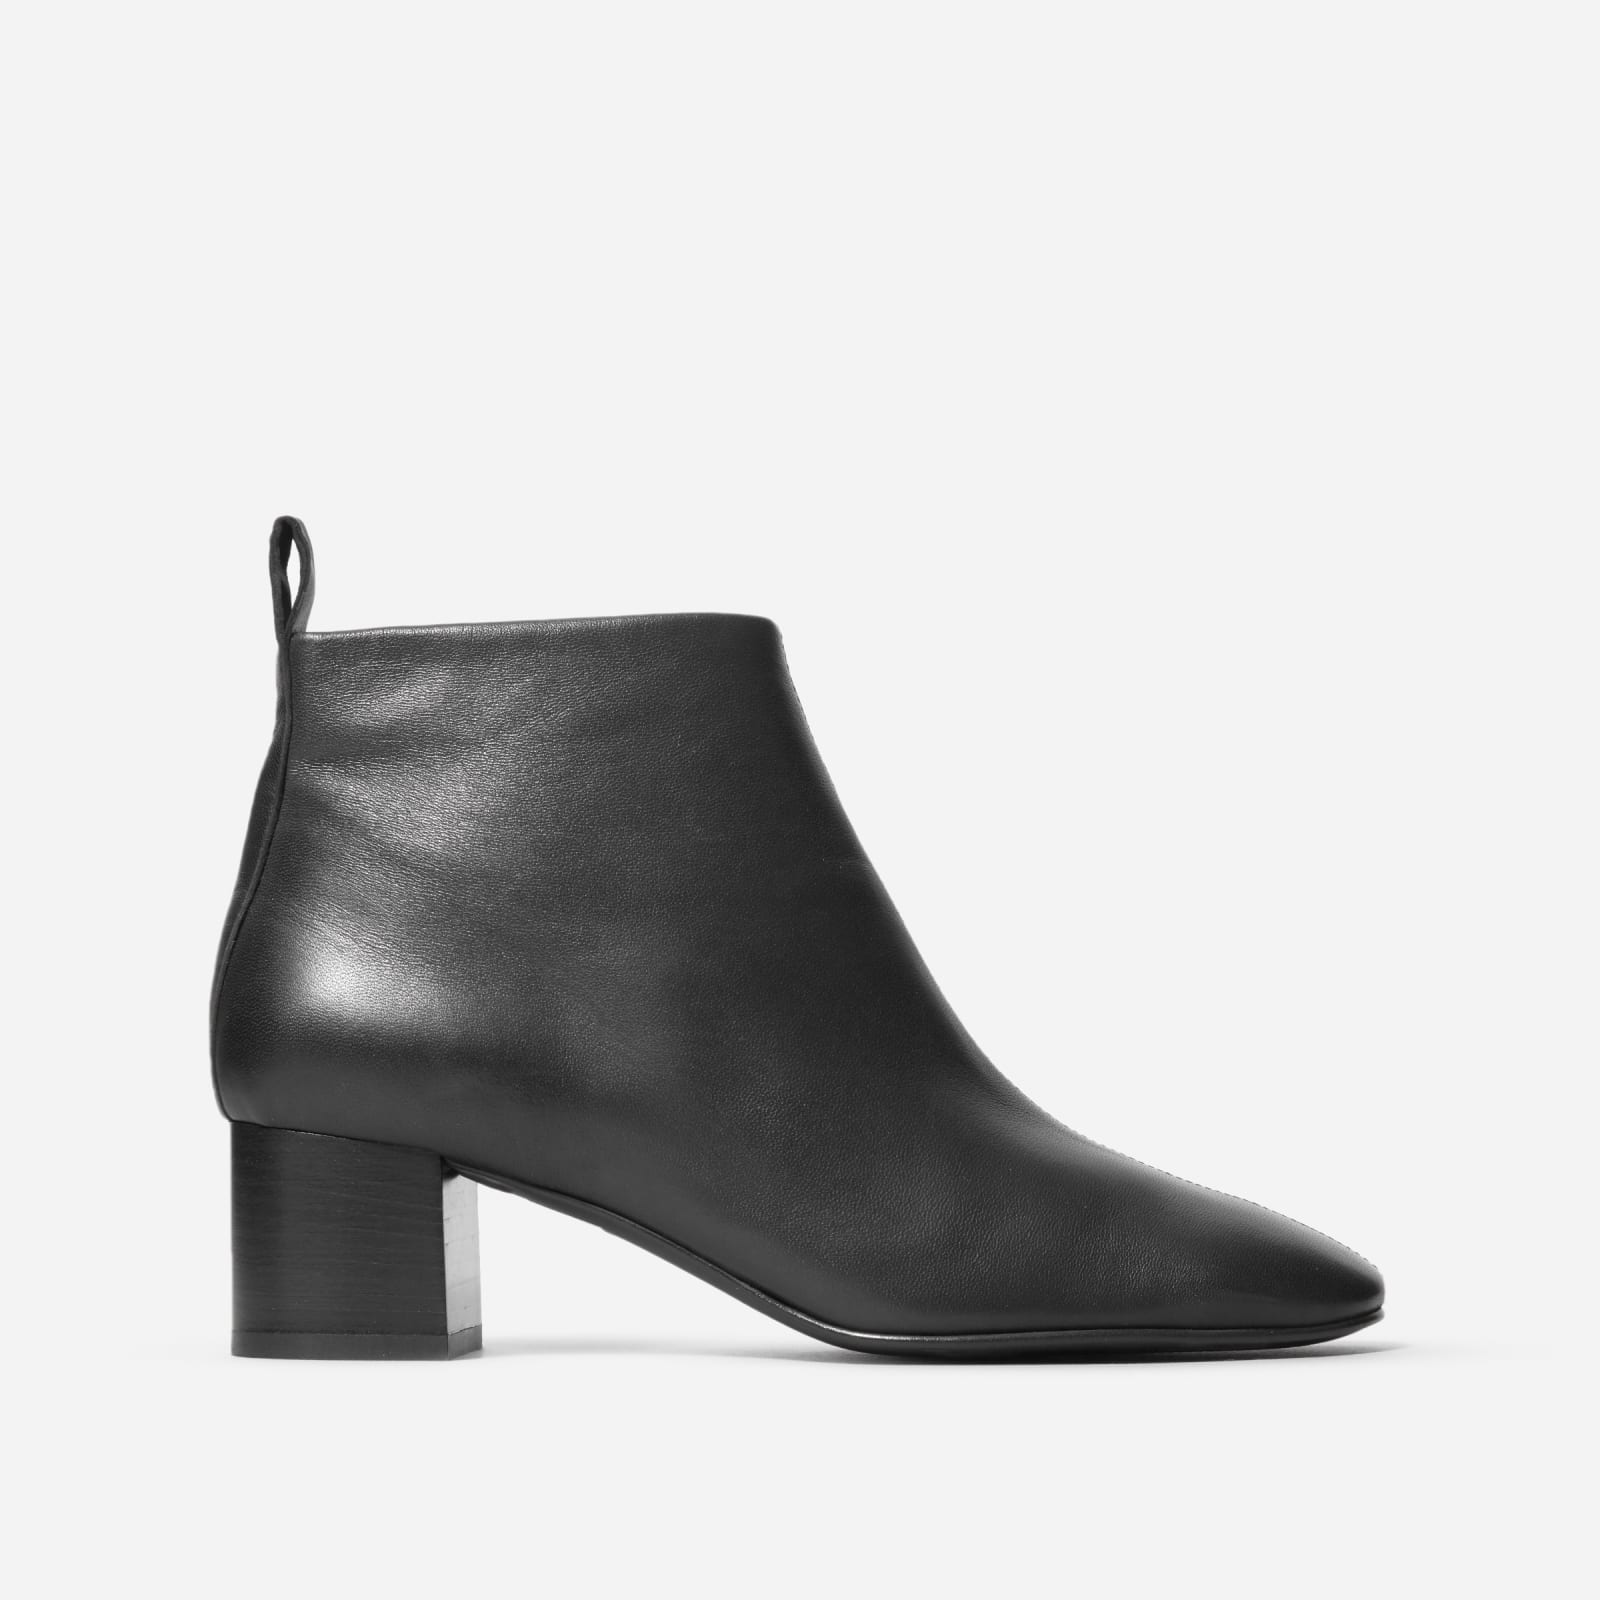 chelsea boot by everlane in black, size 5